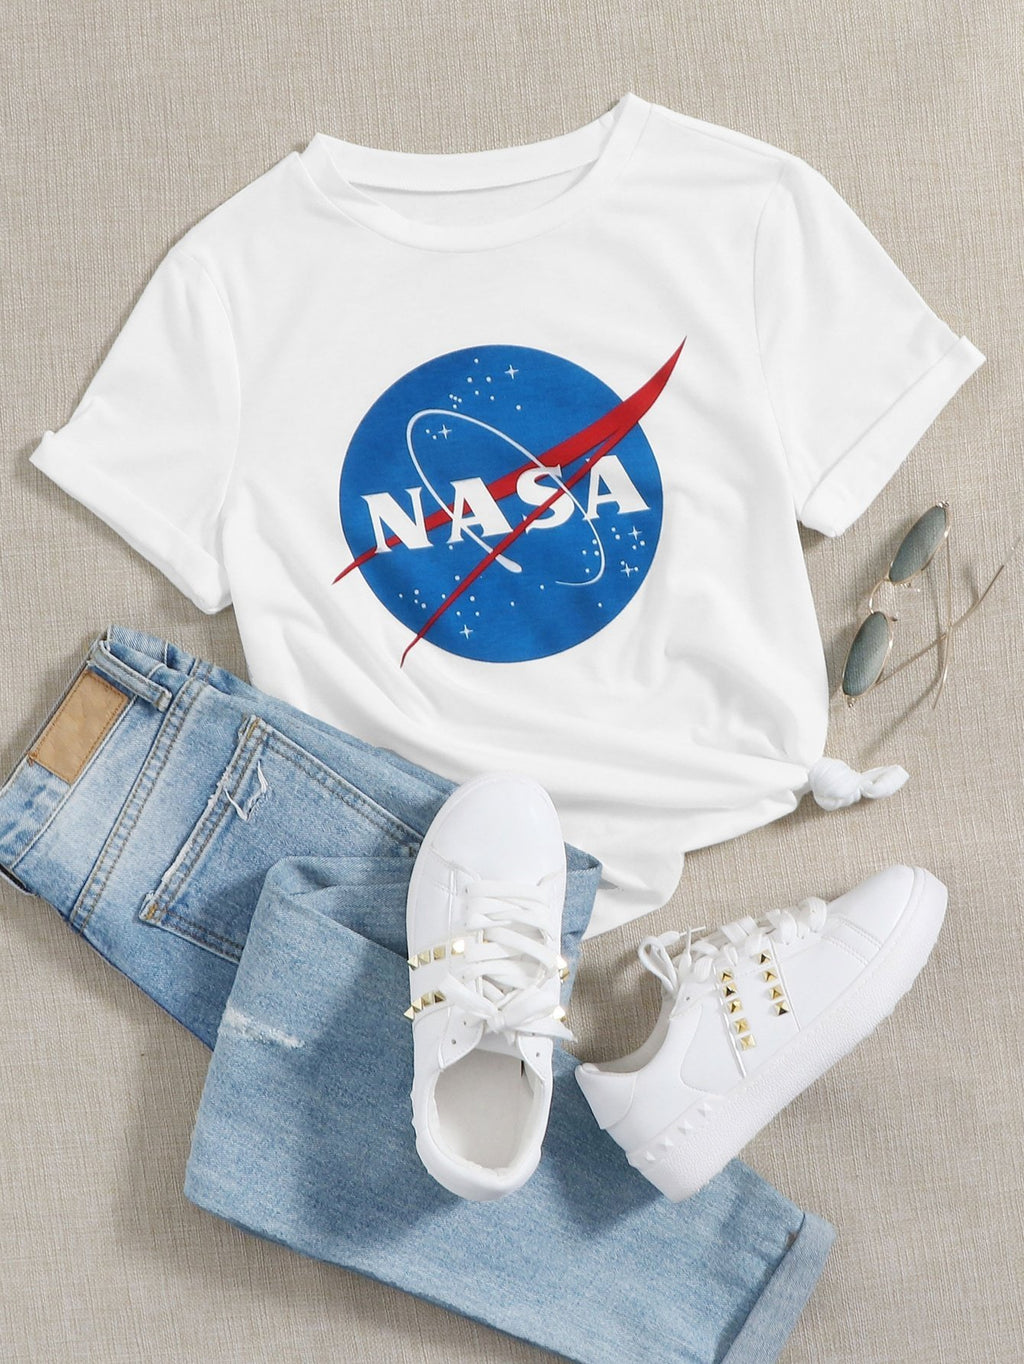 Graphic And Letter Graphic Tee - INS | Online Fashion Free Shipping Clothing, Dresses, Tops, Shoes